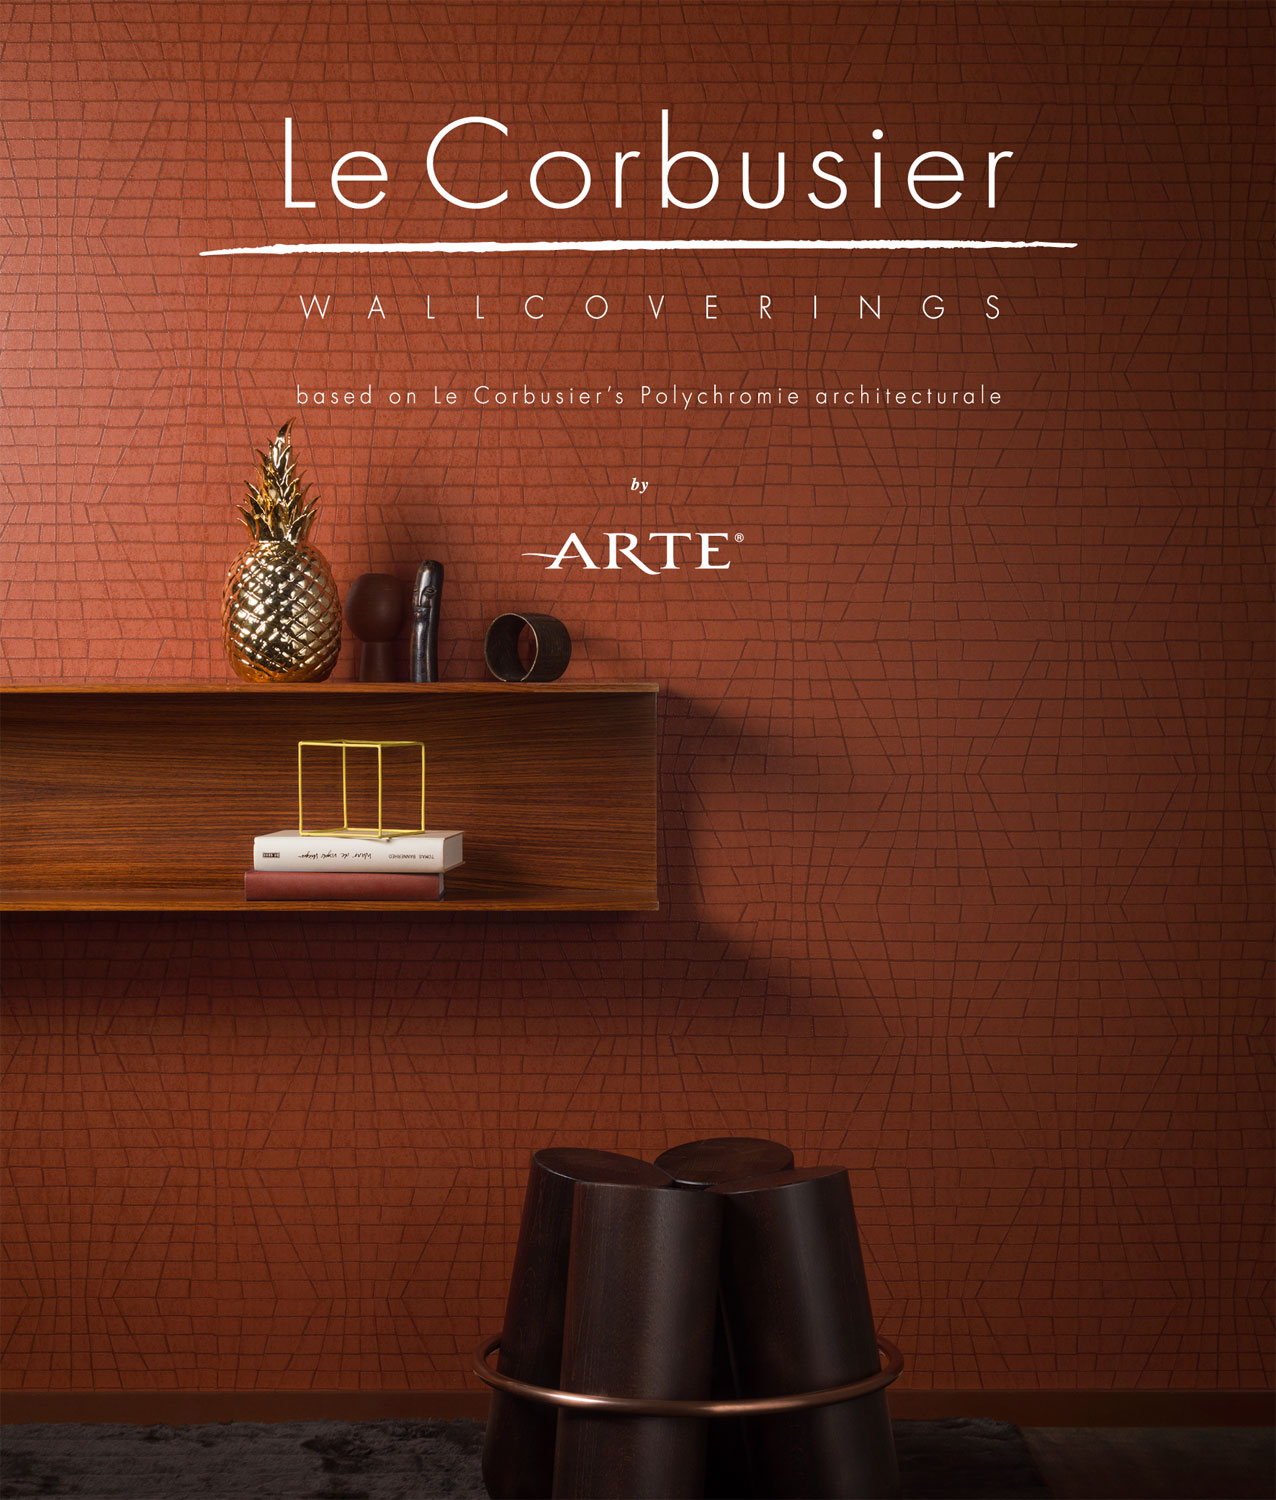 arte le corbusier pavilion page 15 20543. Black Bedroom Furniture Sets. Home Design Ideas